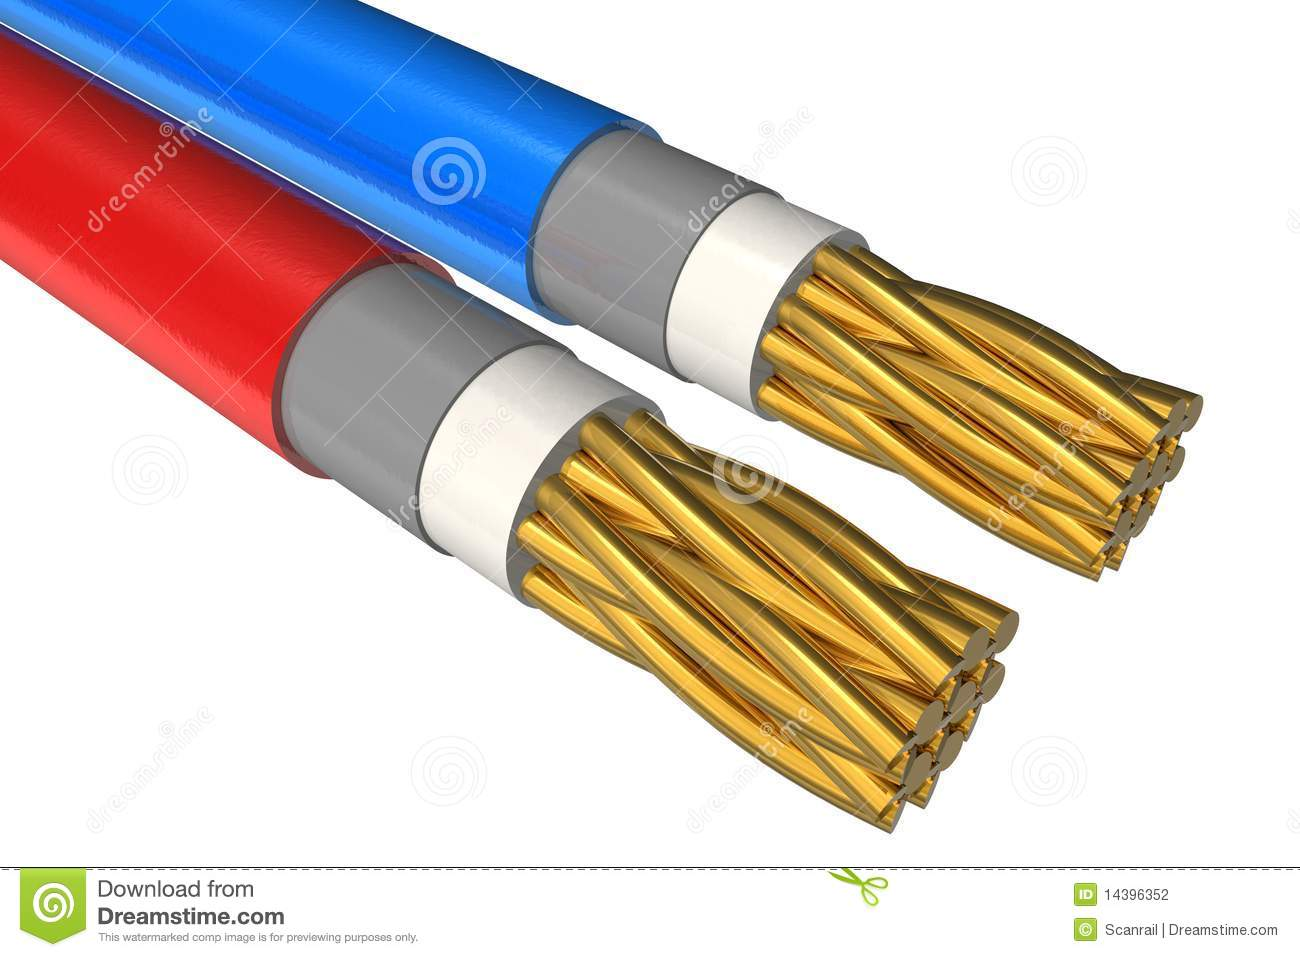 Names Of High Voltage Power Cable : High voltage power cable close up stock illustration